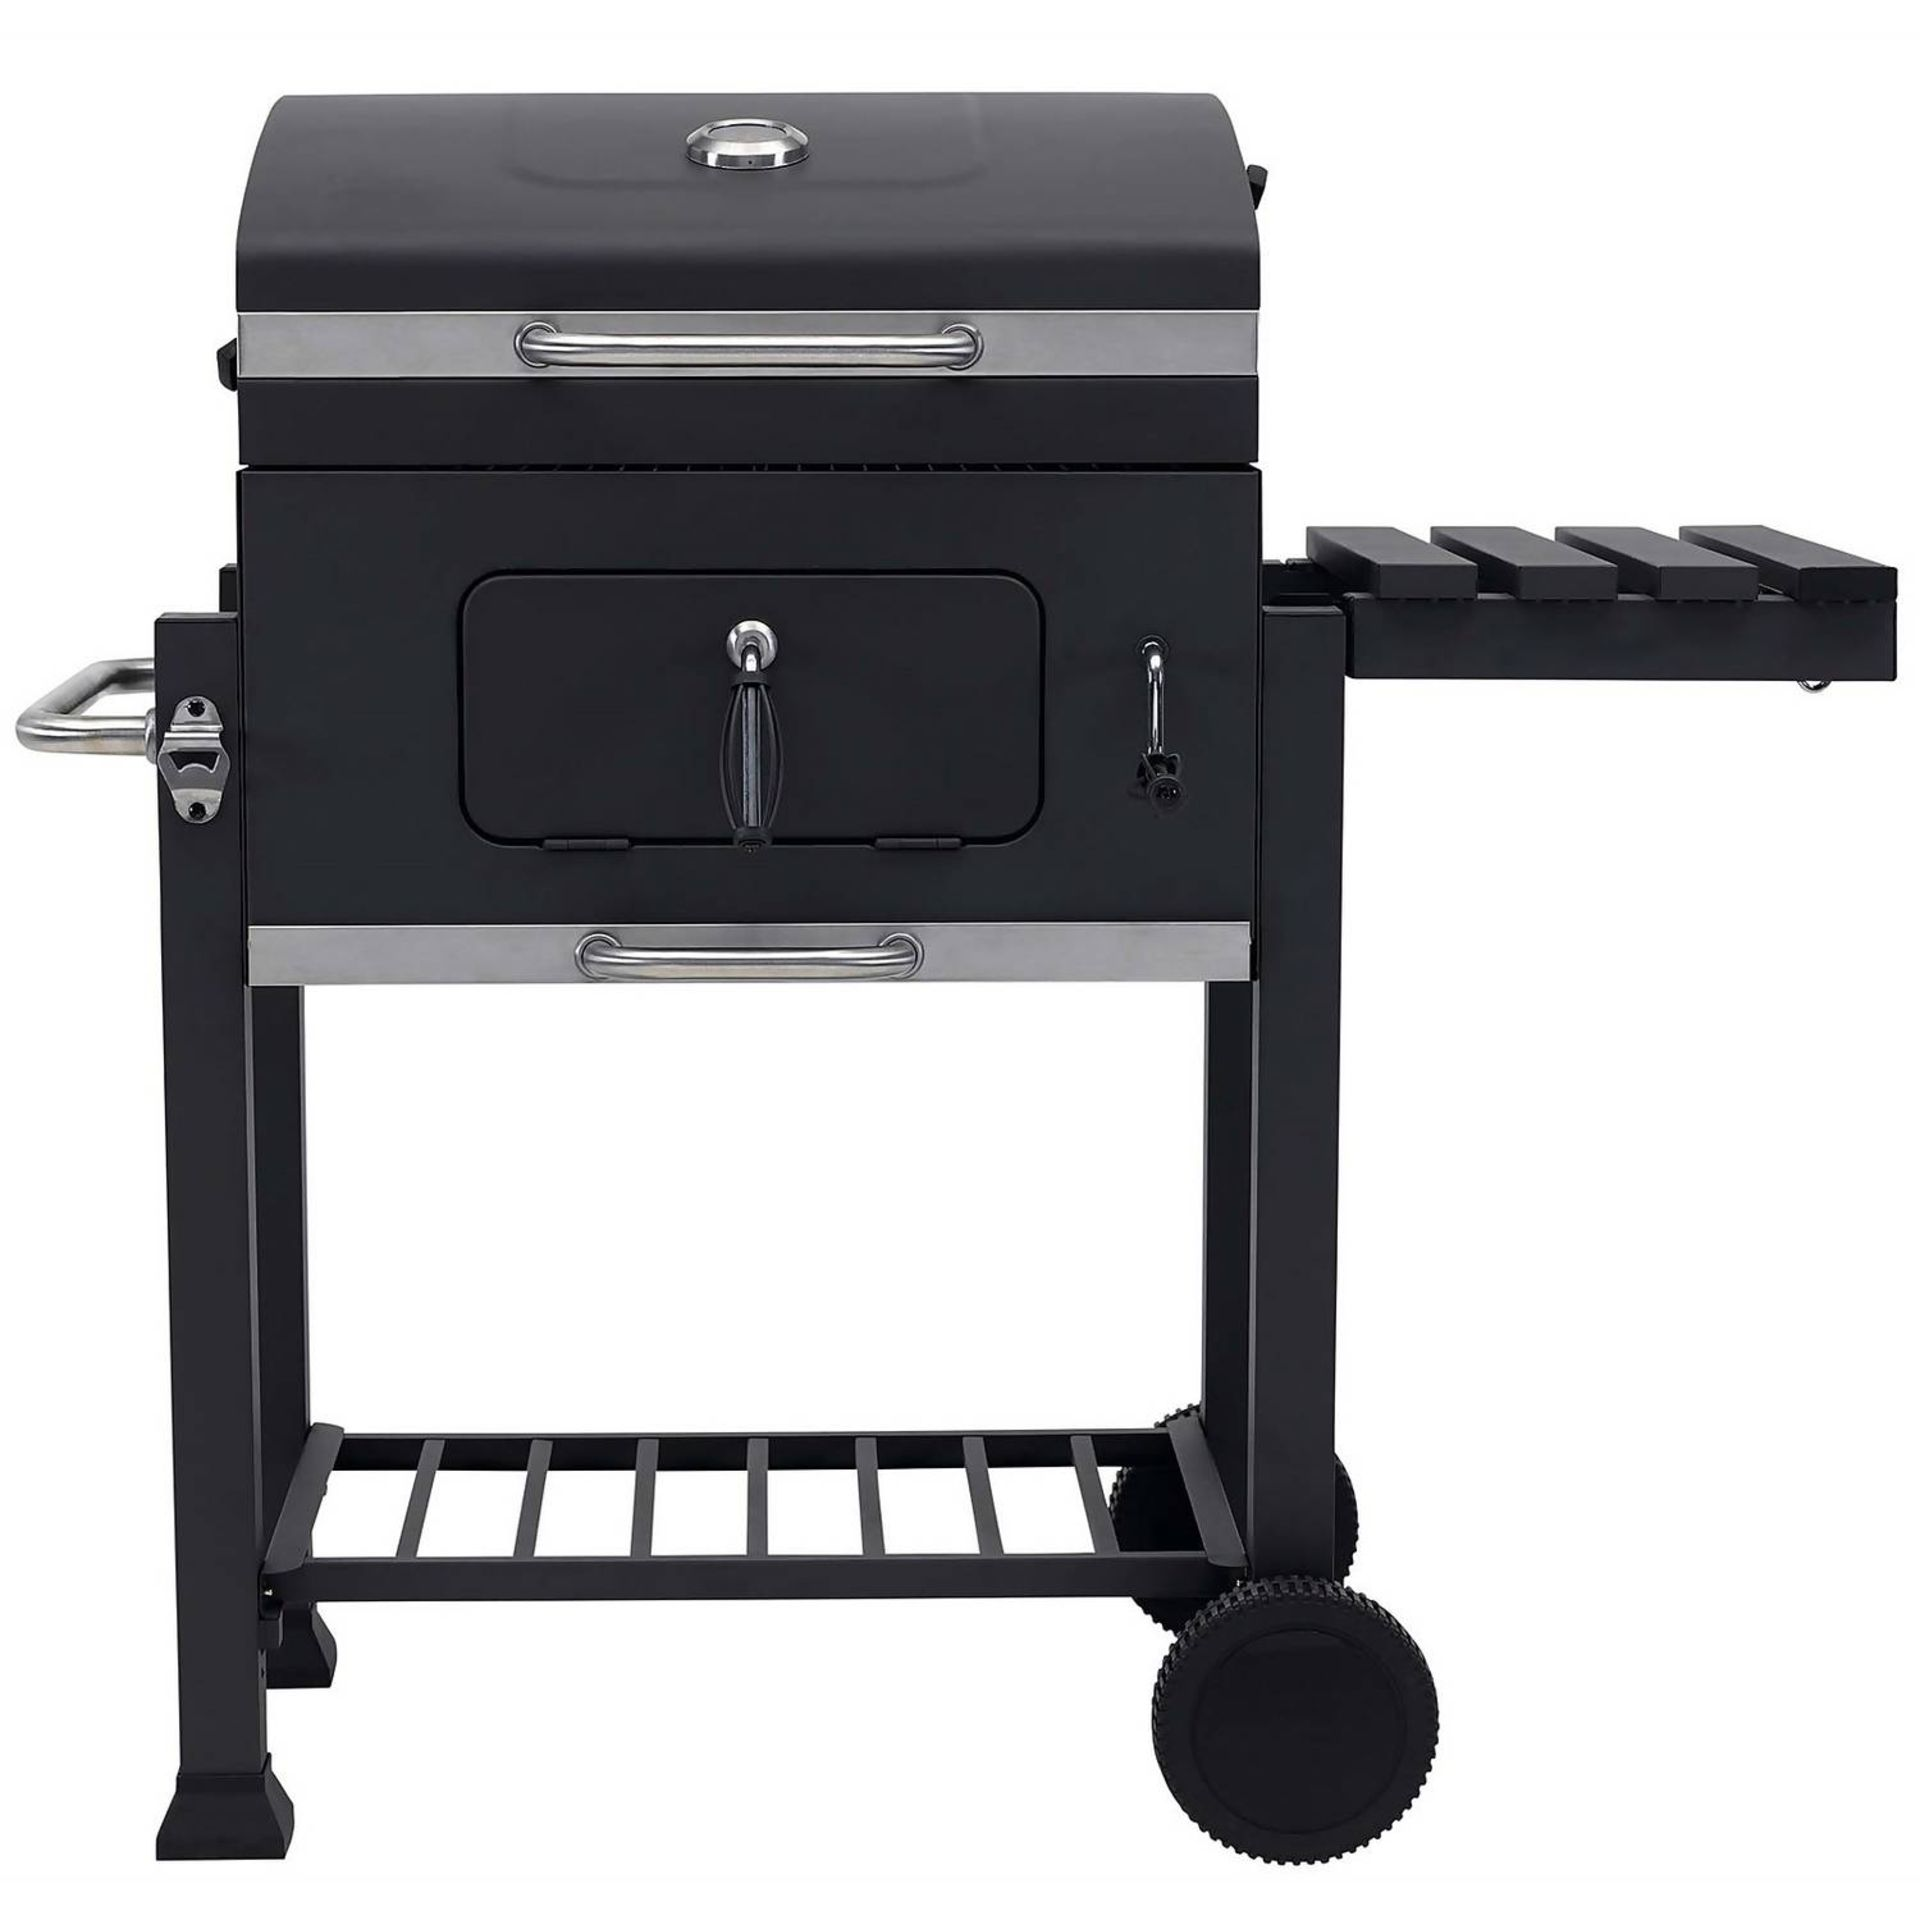 (P3) 1x Texas Franklin Charcoal BBQ. RRP £180.00. Unit Appears Clean, Unused – But Fixings Pack Has - Image 2 of 6